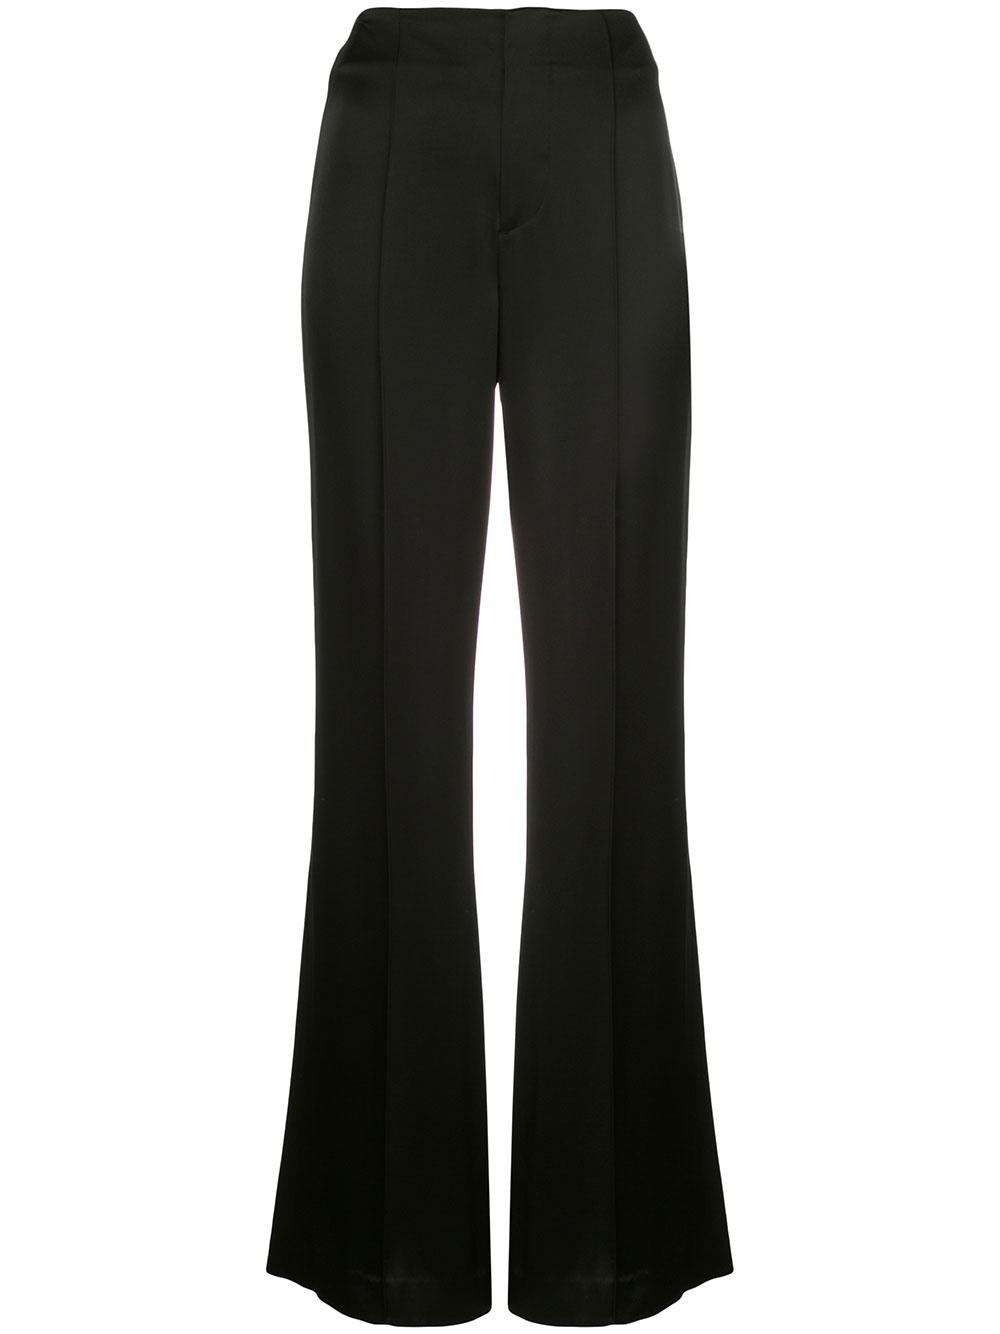 Dylan Satin Clean High Waist Wide Leg Pant Item # CC910A19118